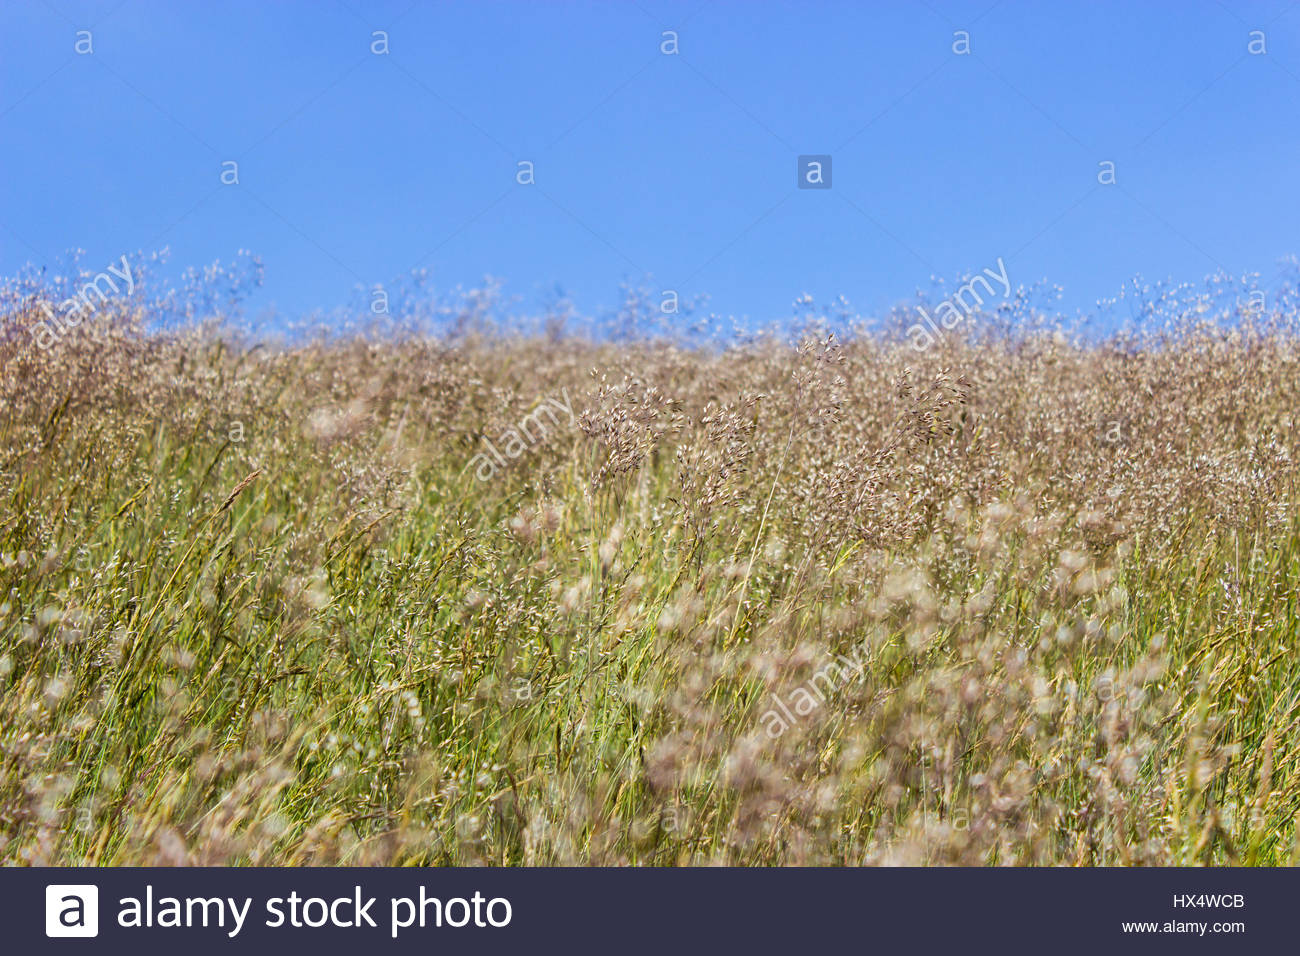 Long grass growing wild in a meadow stock image - Stock Image